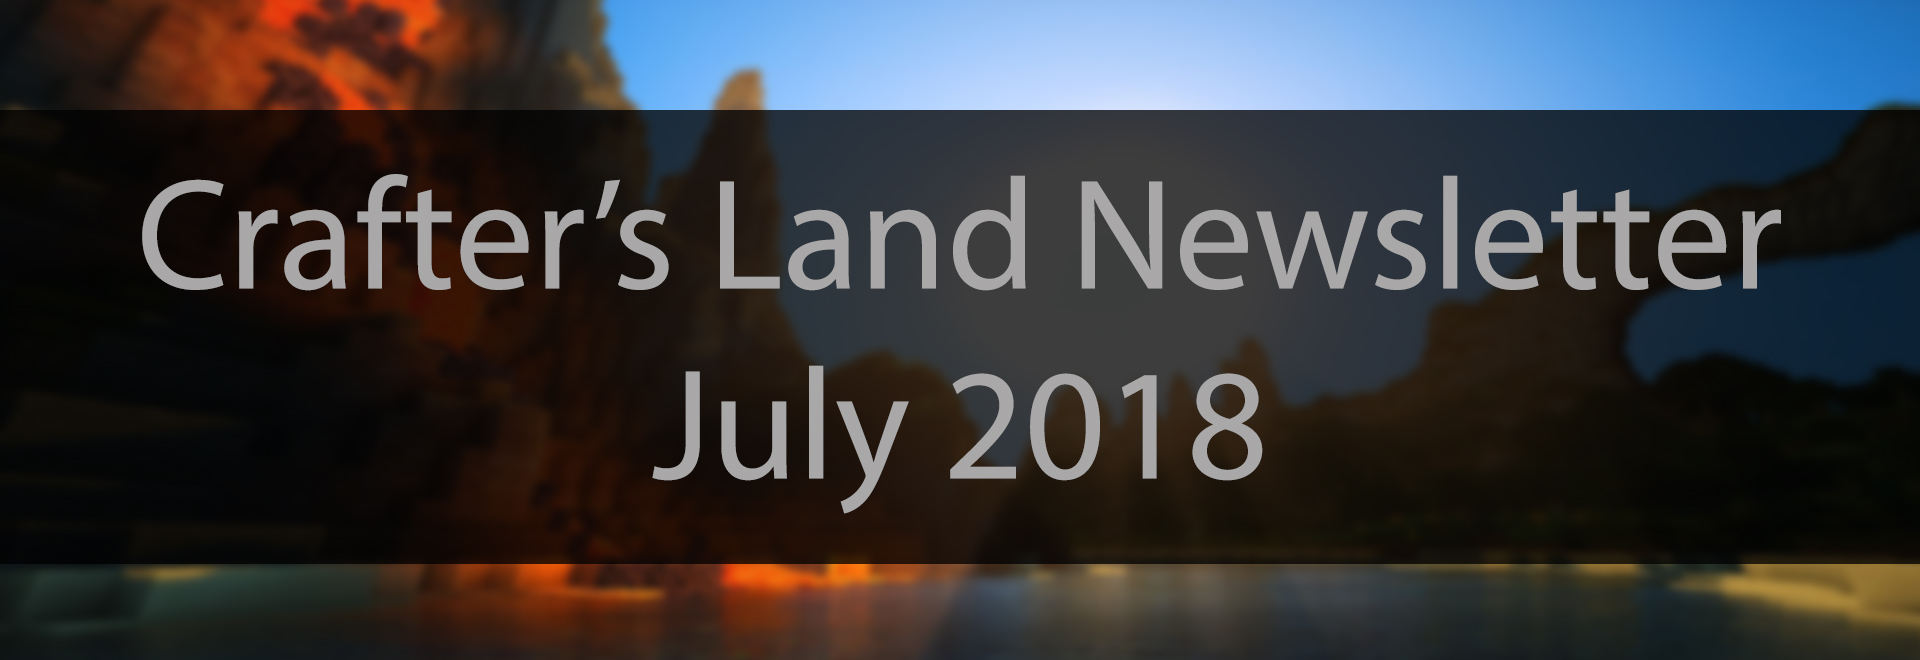 july-2018-newsletter.jpg